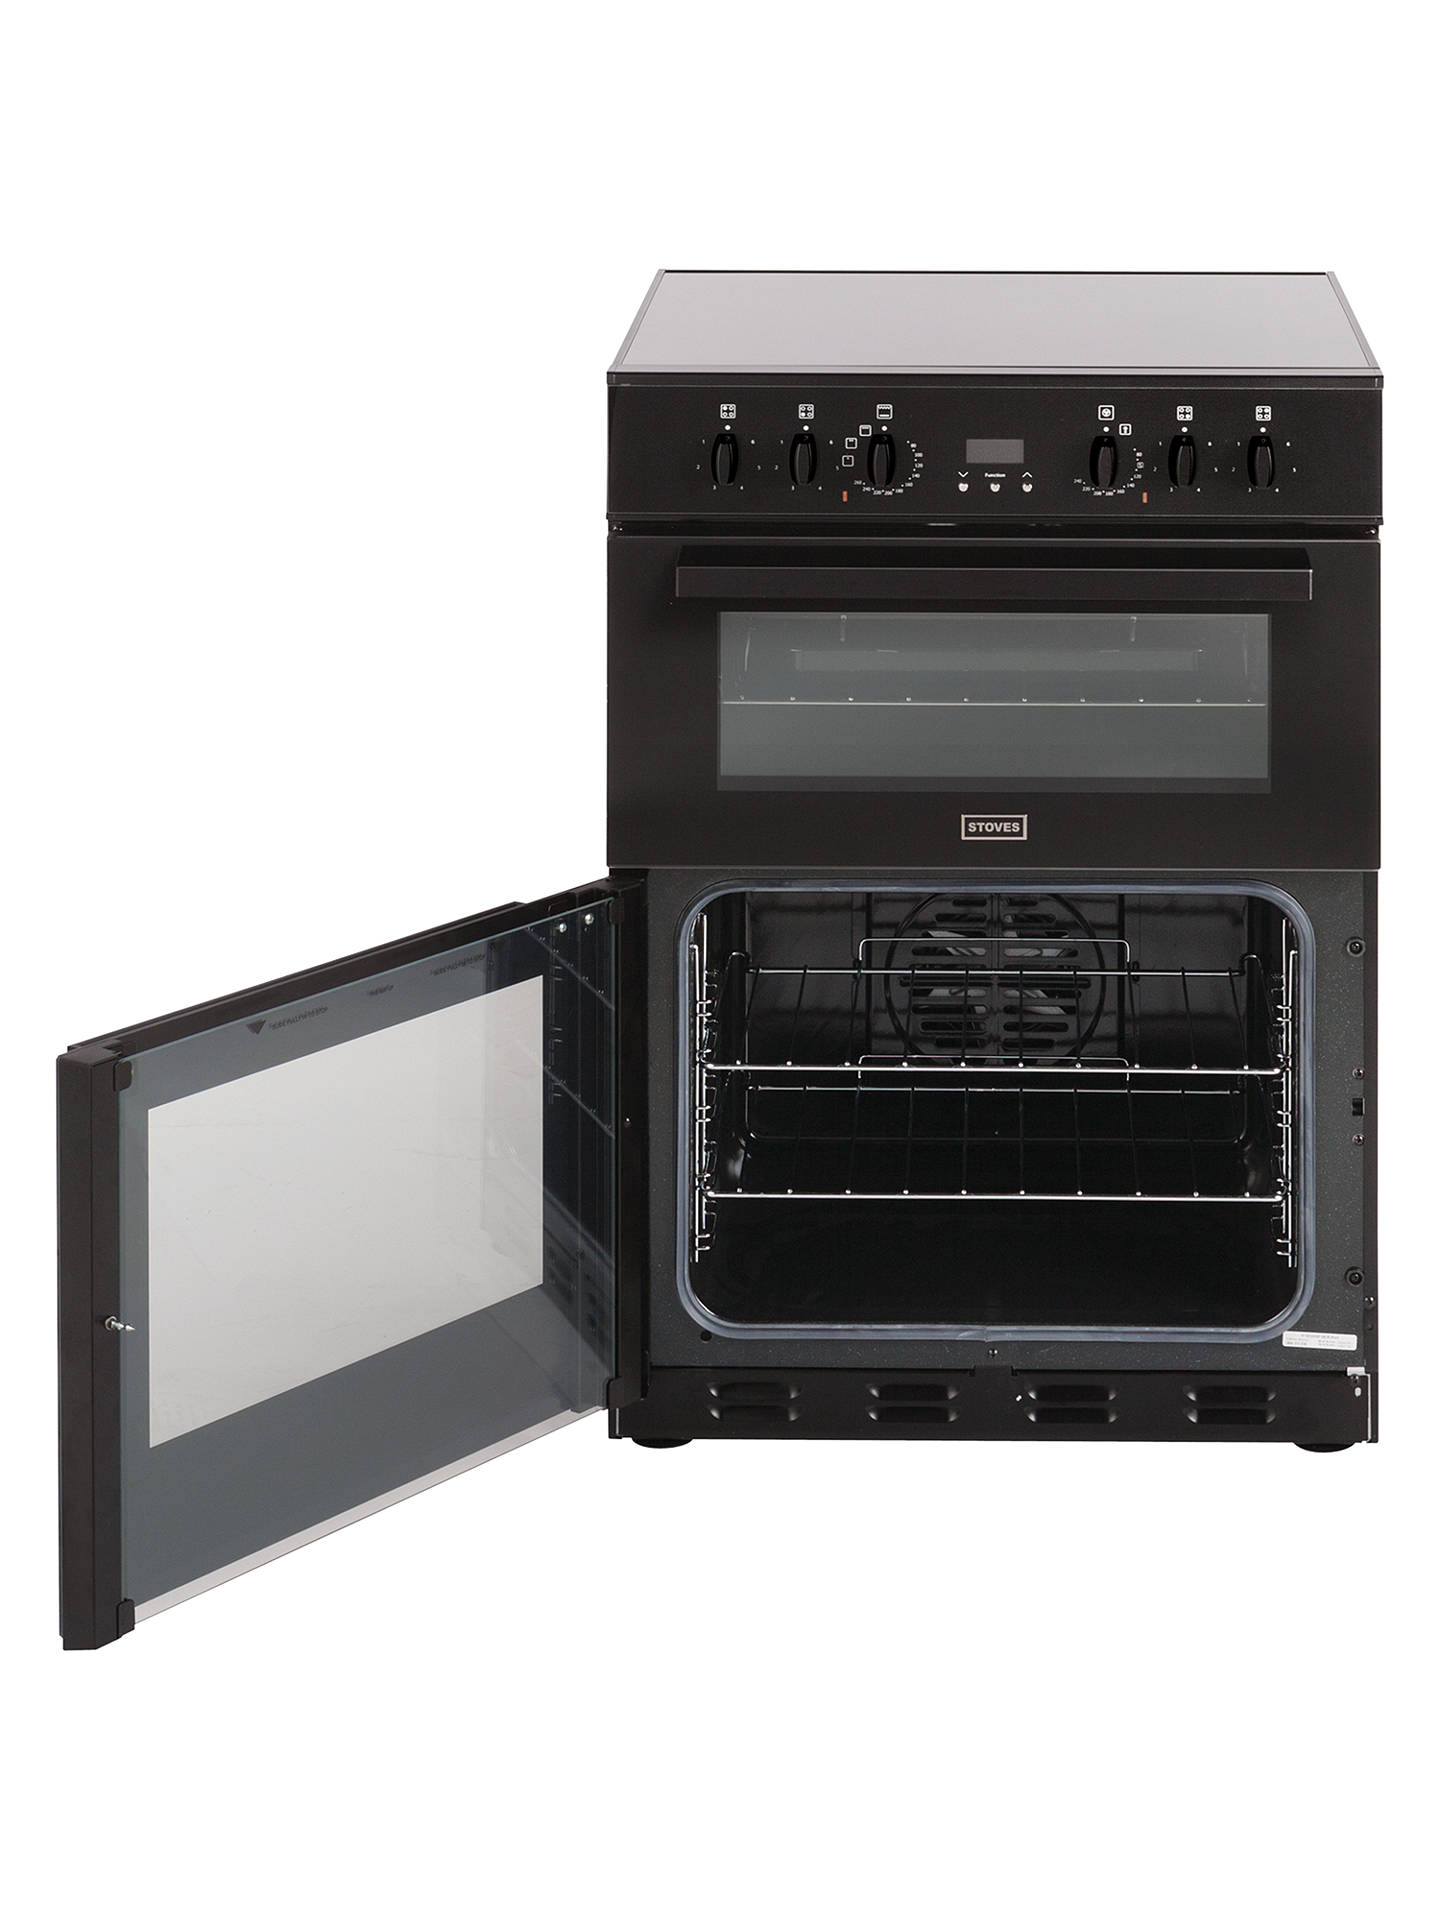 Buy Stoves SEC60DOP Electric Cooker, Black Online at johnlewis.com